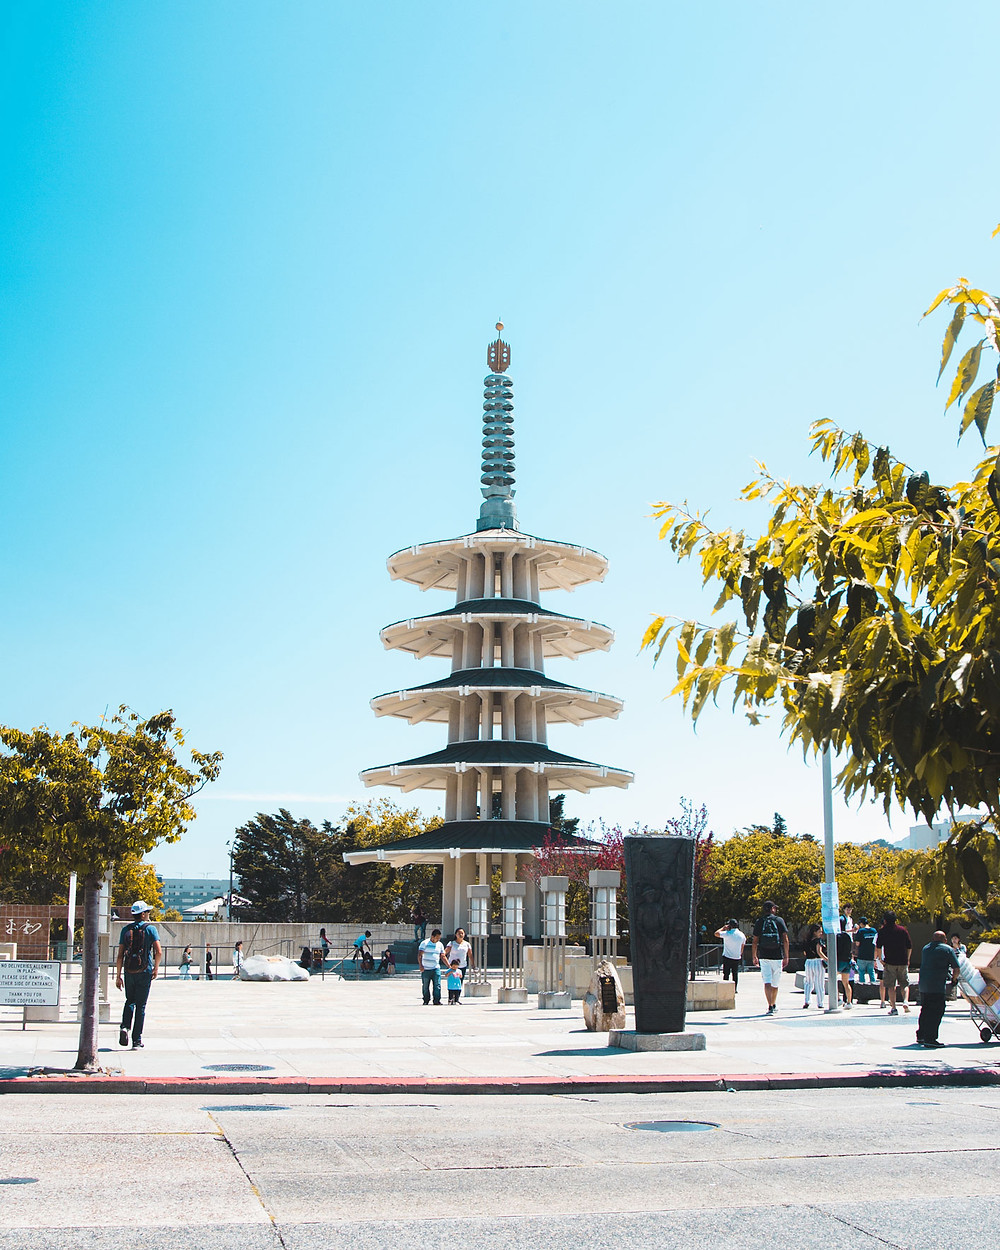 One of the hidden gems I found, Japantown, In San Francisco, covering only a few blocks, it's very small but often overlooked because of Chinatown that is nearby. Definitely a must see!